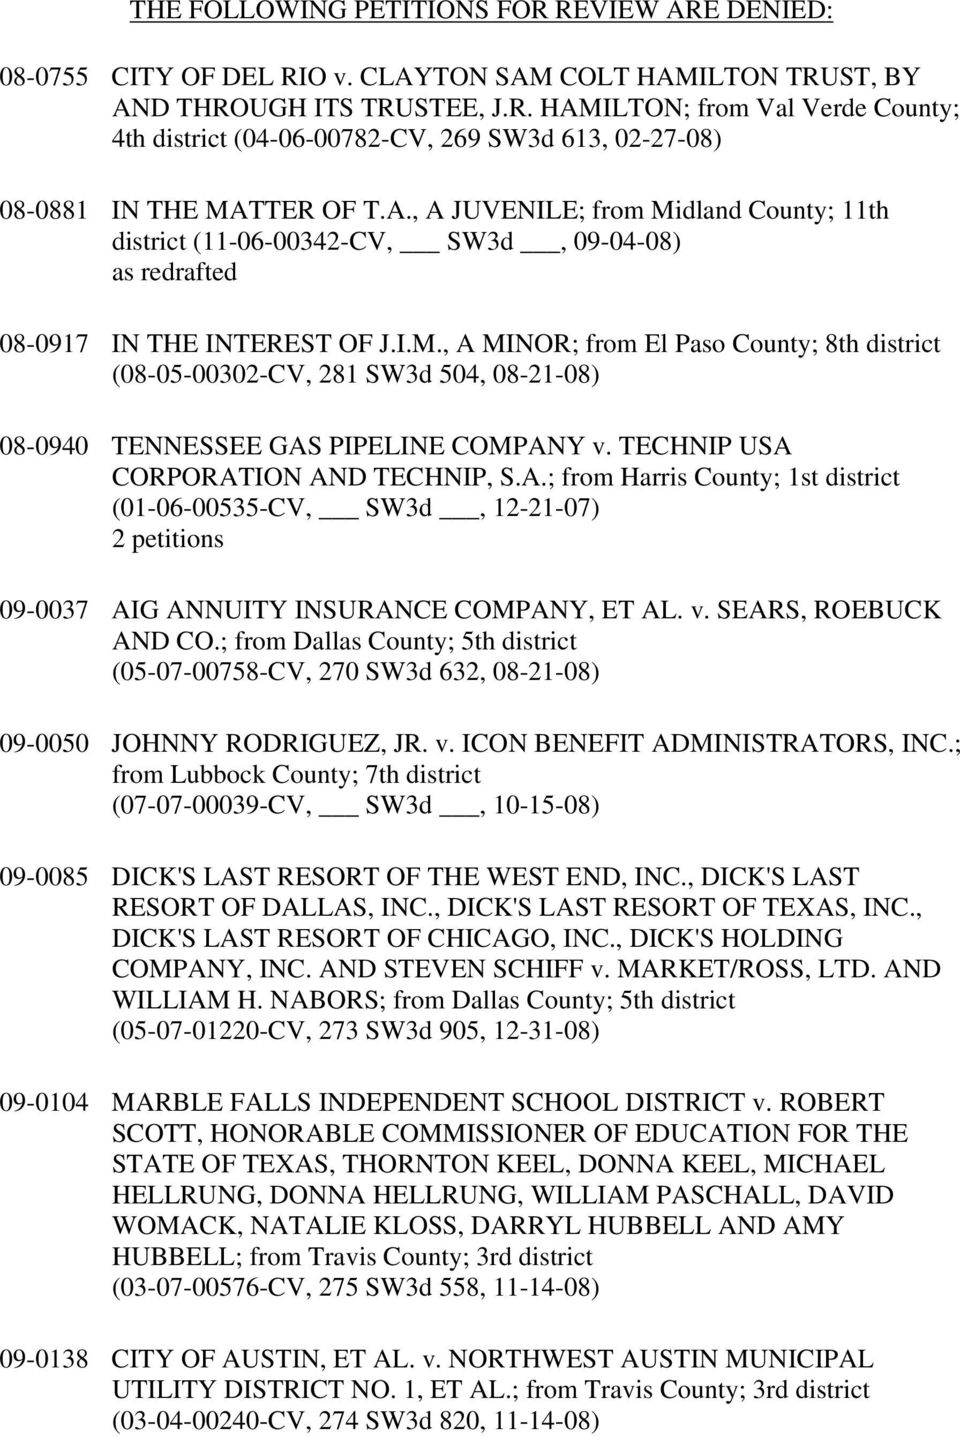 TECHNIP USA CORPORATION AND TECHNIP, S.A.; from Harris County; 1st district (01-06-00535-CV, SW3d, 12-21-07) 2 petitions 09-0037 AIG ANNUITY INSURANCE COMPANY, ET AL. v. SEARS, ROEBUCK AND CO.